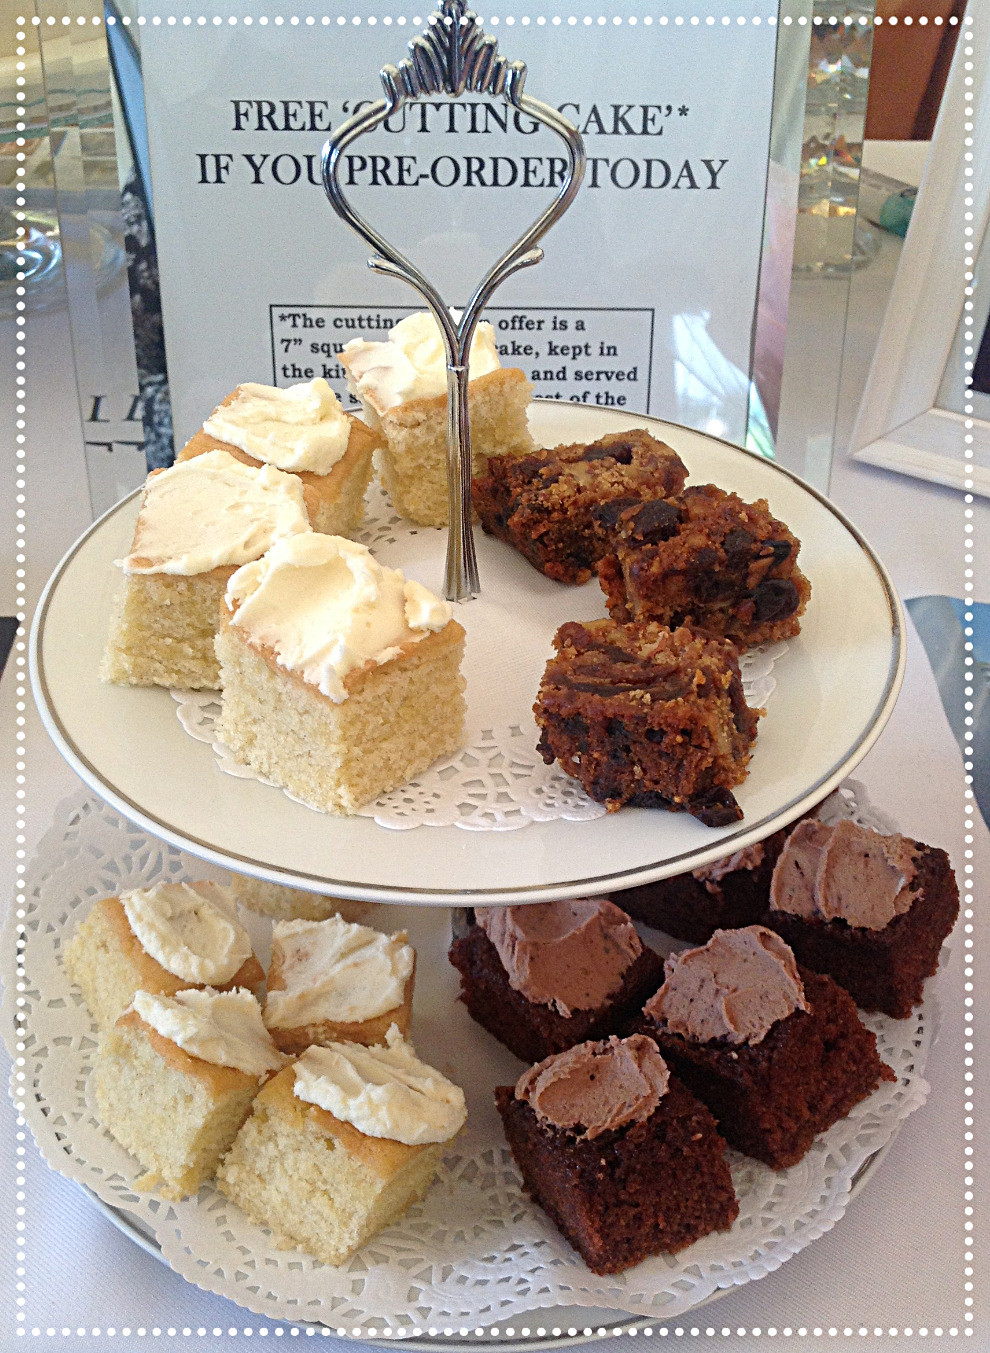 Samples of different cake flavours on a vintage cake stand at a wedding fair